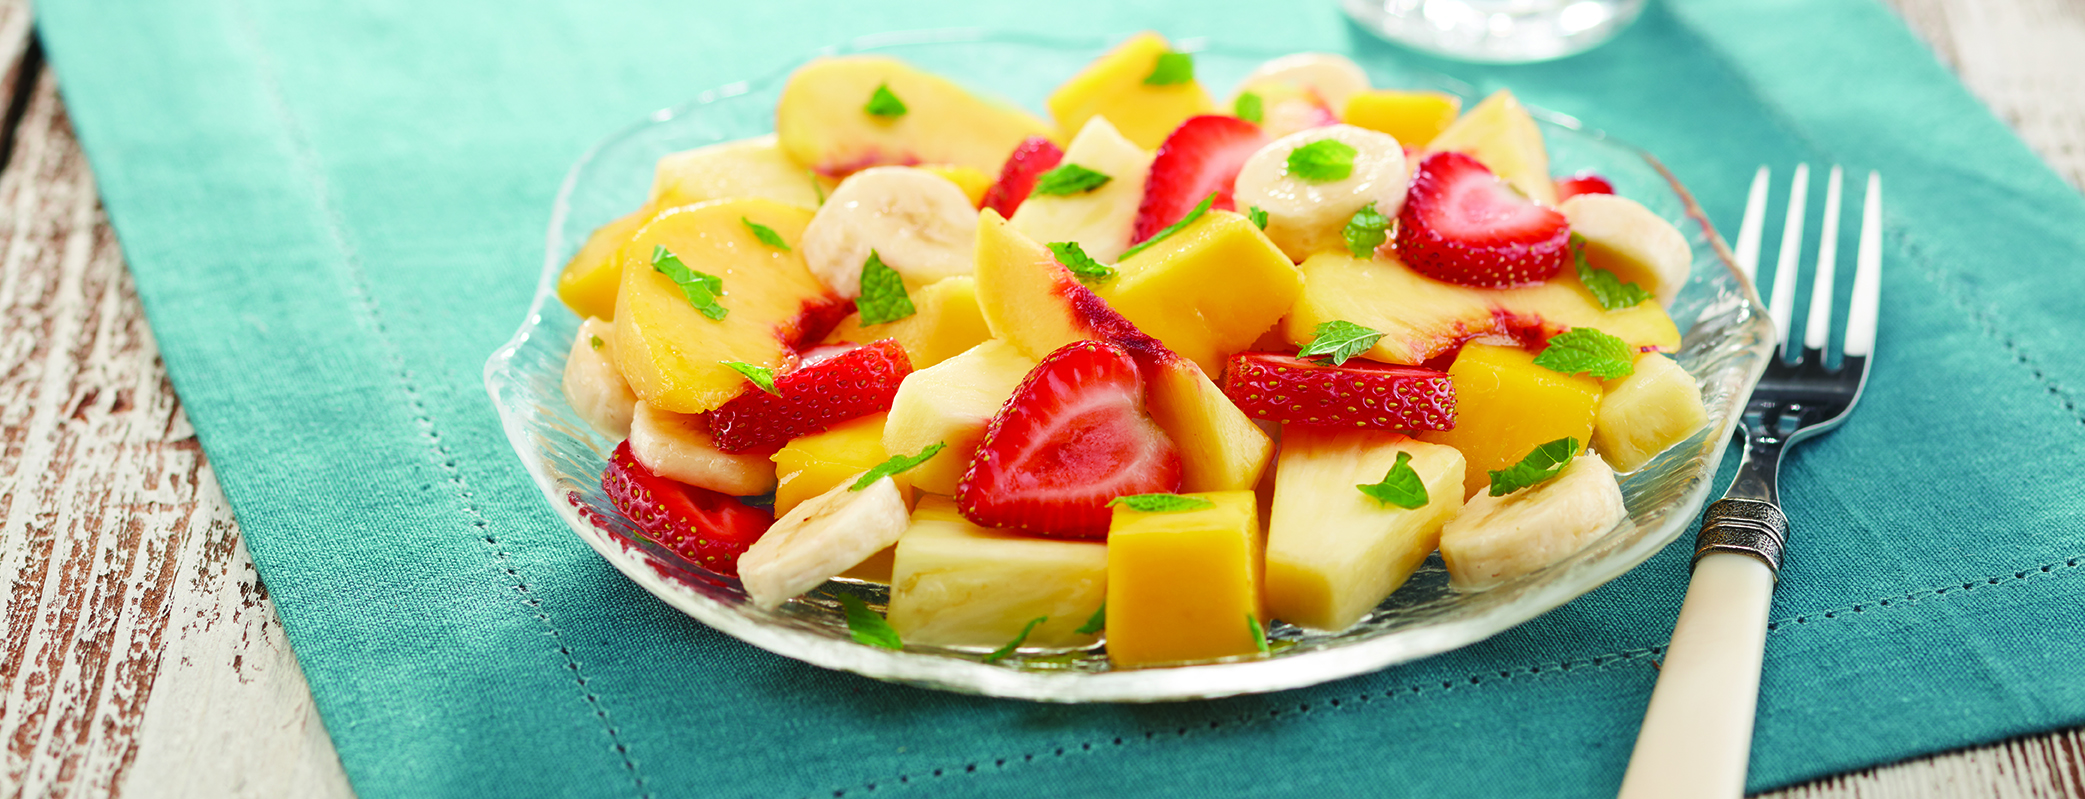 Photo of Minted Ginger Fruit Salad